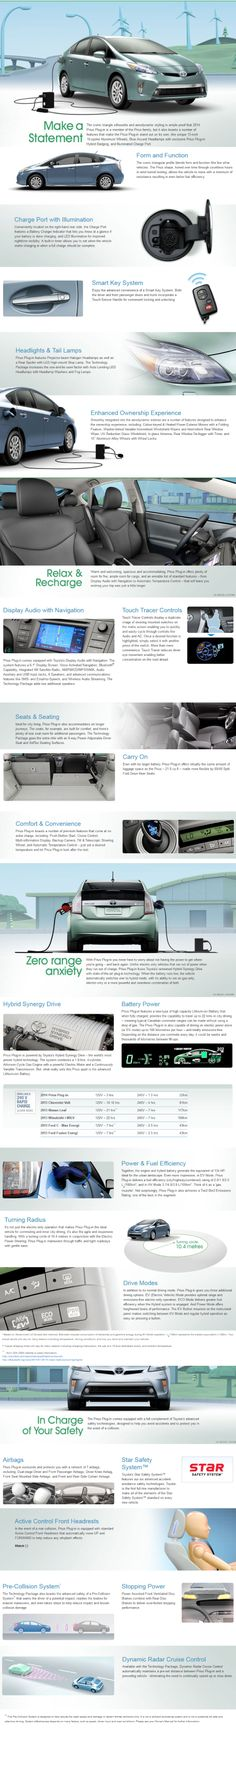 2014 Toyota Prius Plug-in Hybrid Features